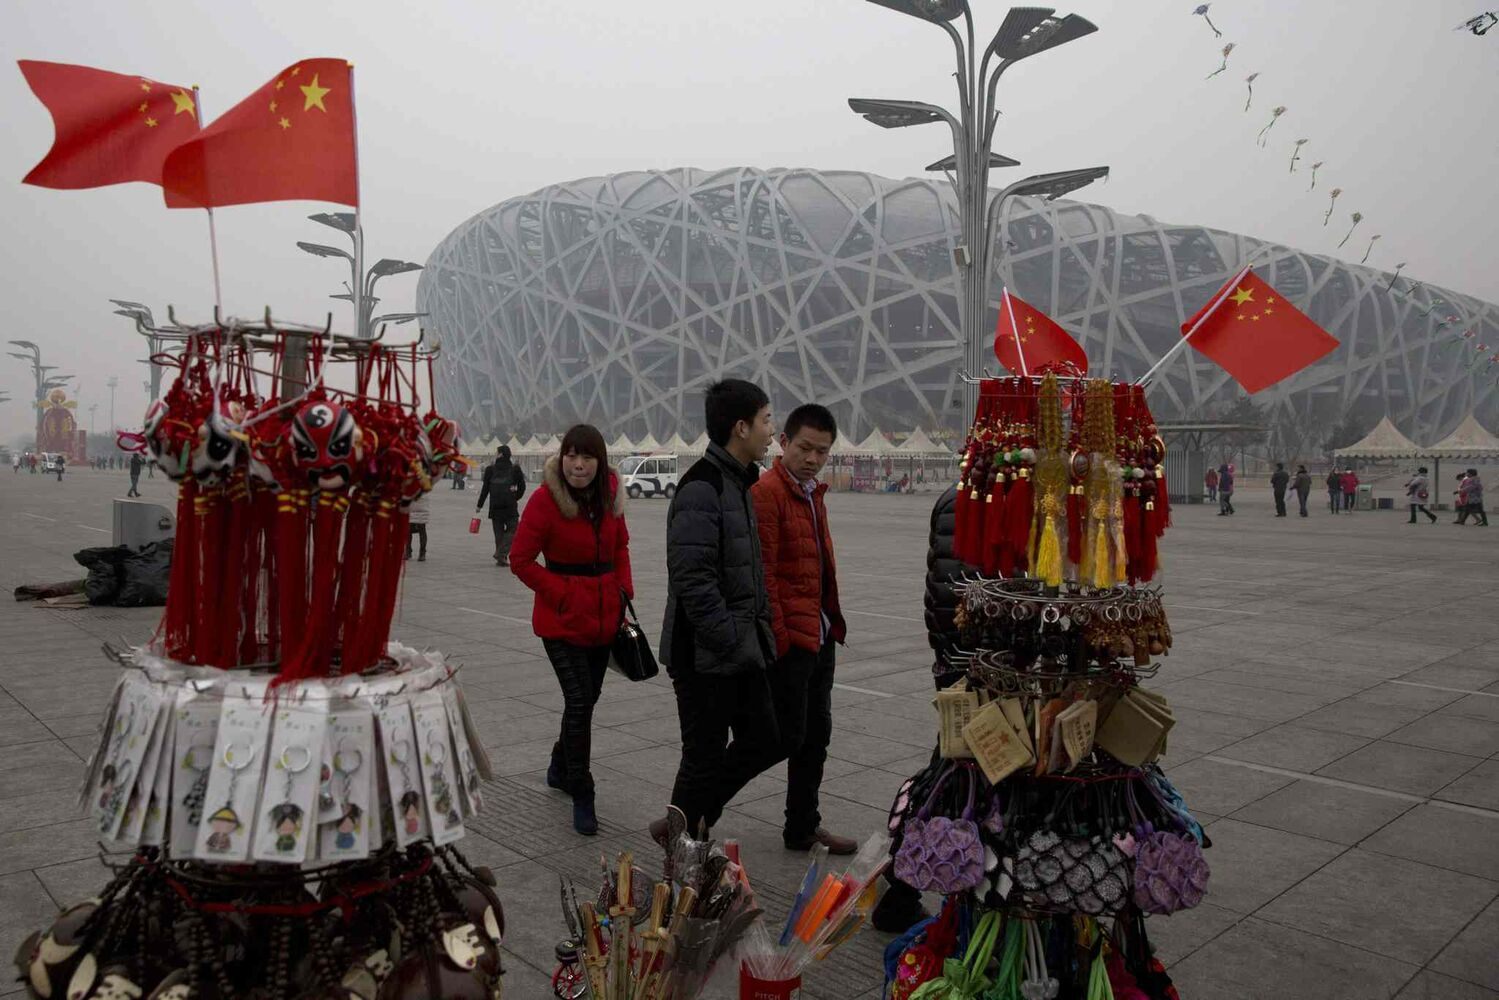 Tourists pass by memorabilia on sale near the iconic Bird's Nest National Stadium in Beijing, China. Few tourists are willing to pay more than $8 to tour the facility as enthusiasm for the 2008 Games fades, and the venue has struggled to fill its space with events. (Ng Han Guan / The Associated Press)